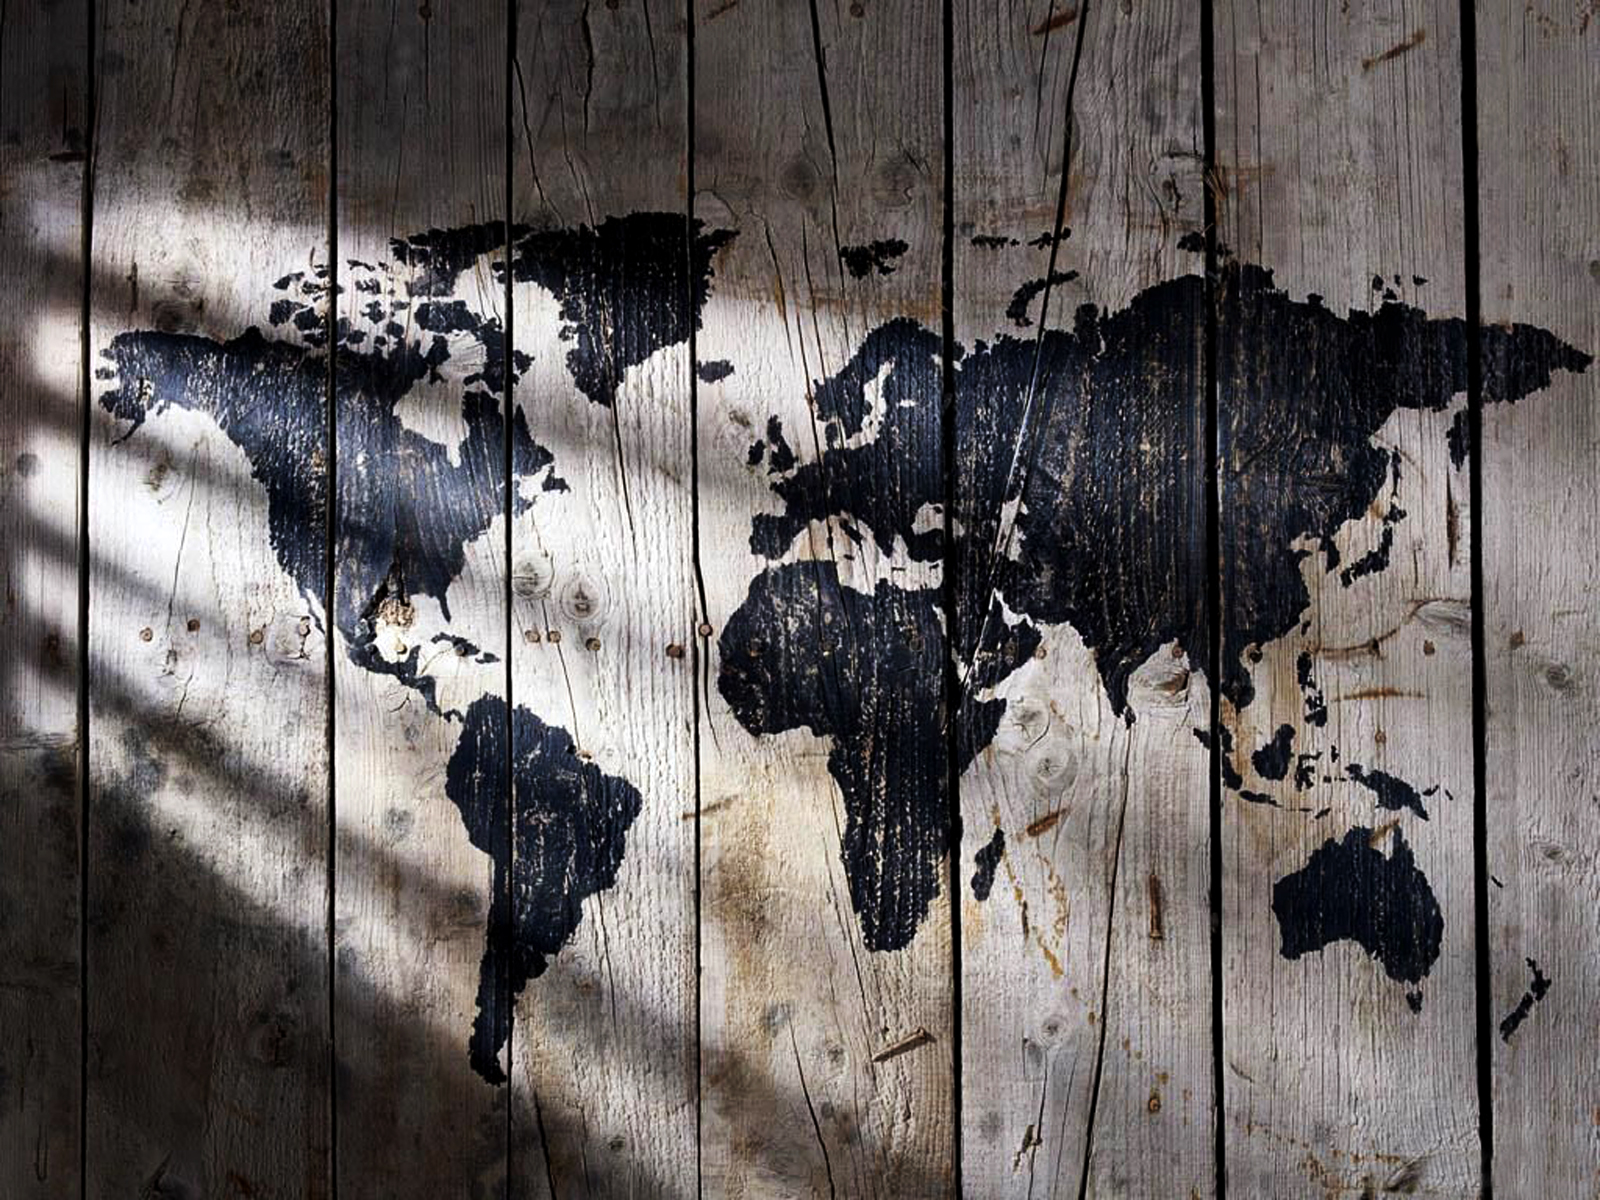 Central wallpaper world map on your desktop creative designs world map painted on wood texture lights and shadows hd wallpaper gumiabroncs